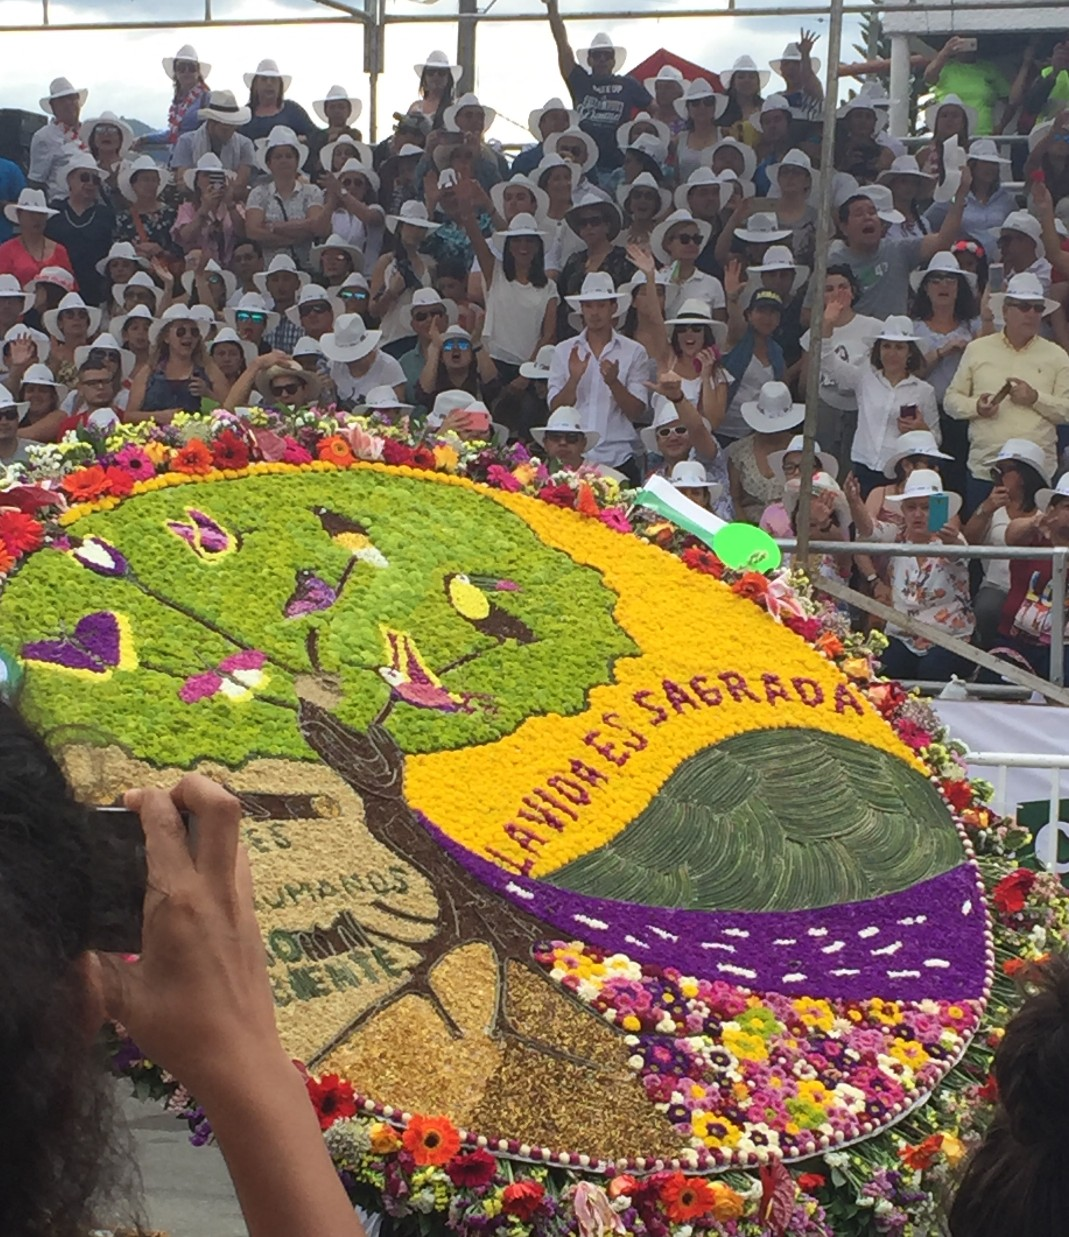 parade big flower display.jpg